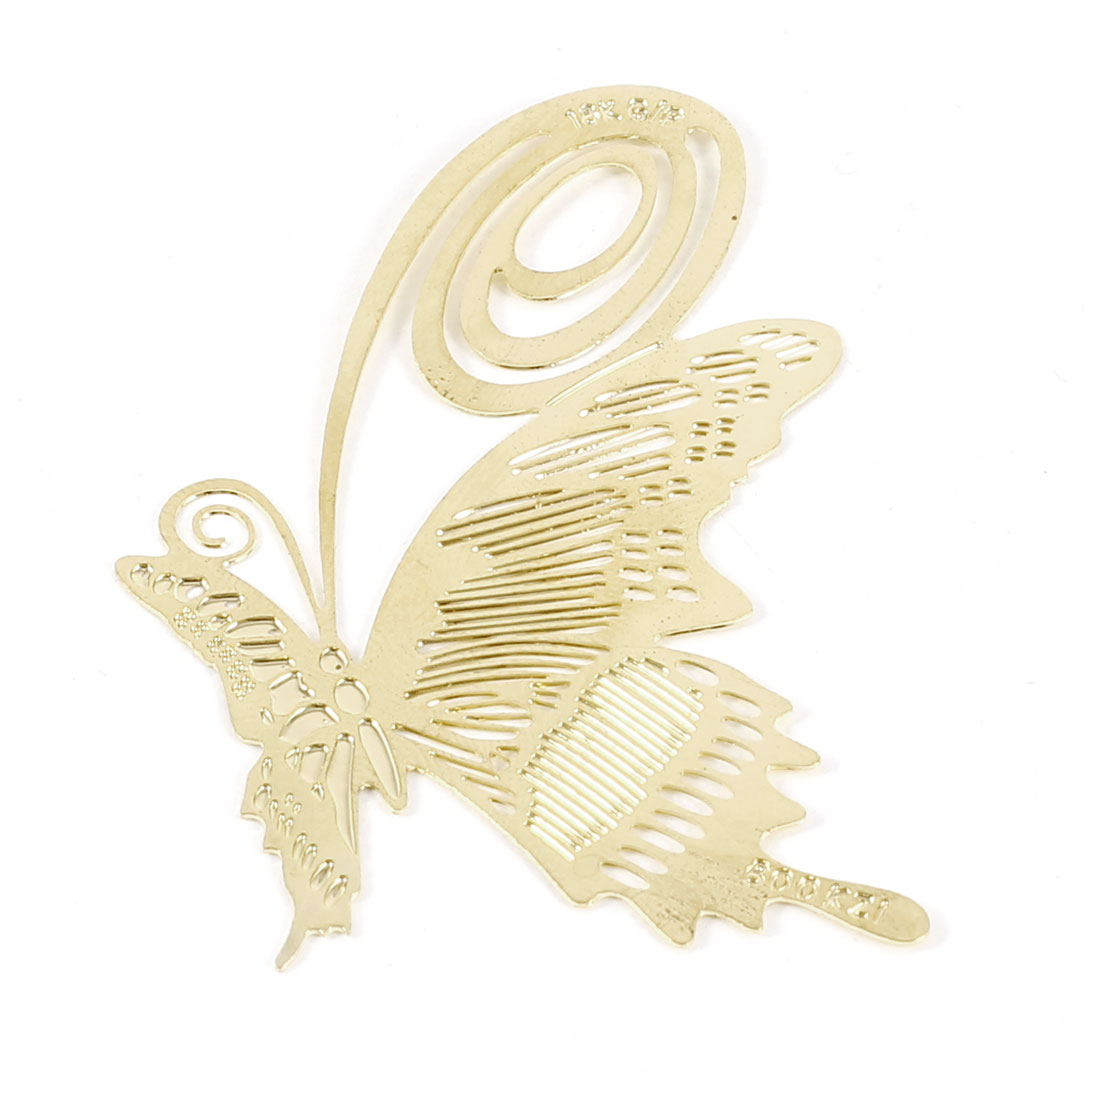 Gold Tone Students Reading Metal Butterfly Bookmark Page Holder Bookmarker